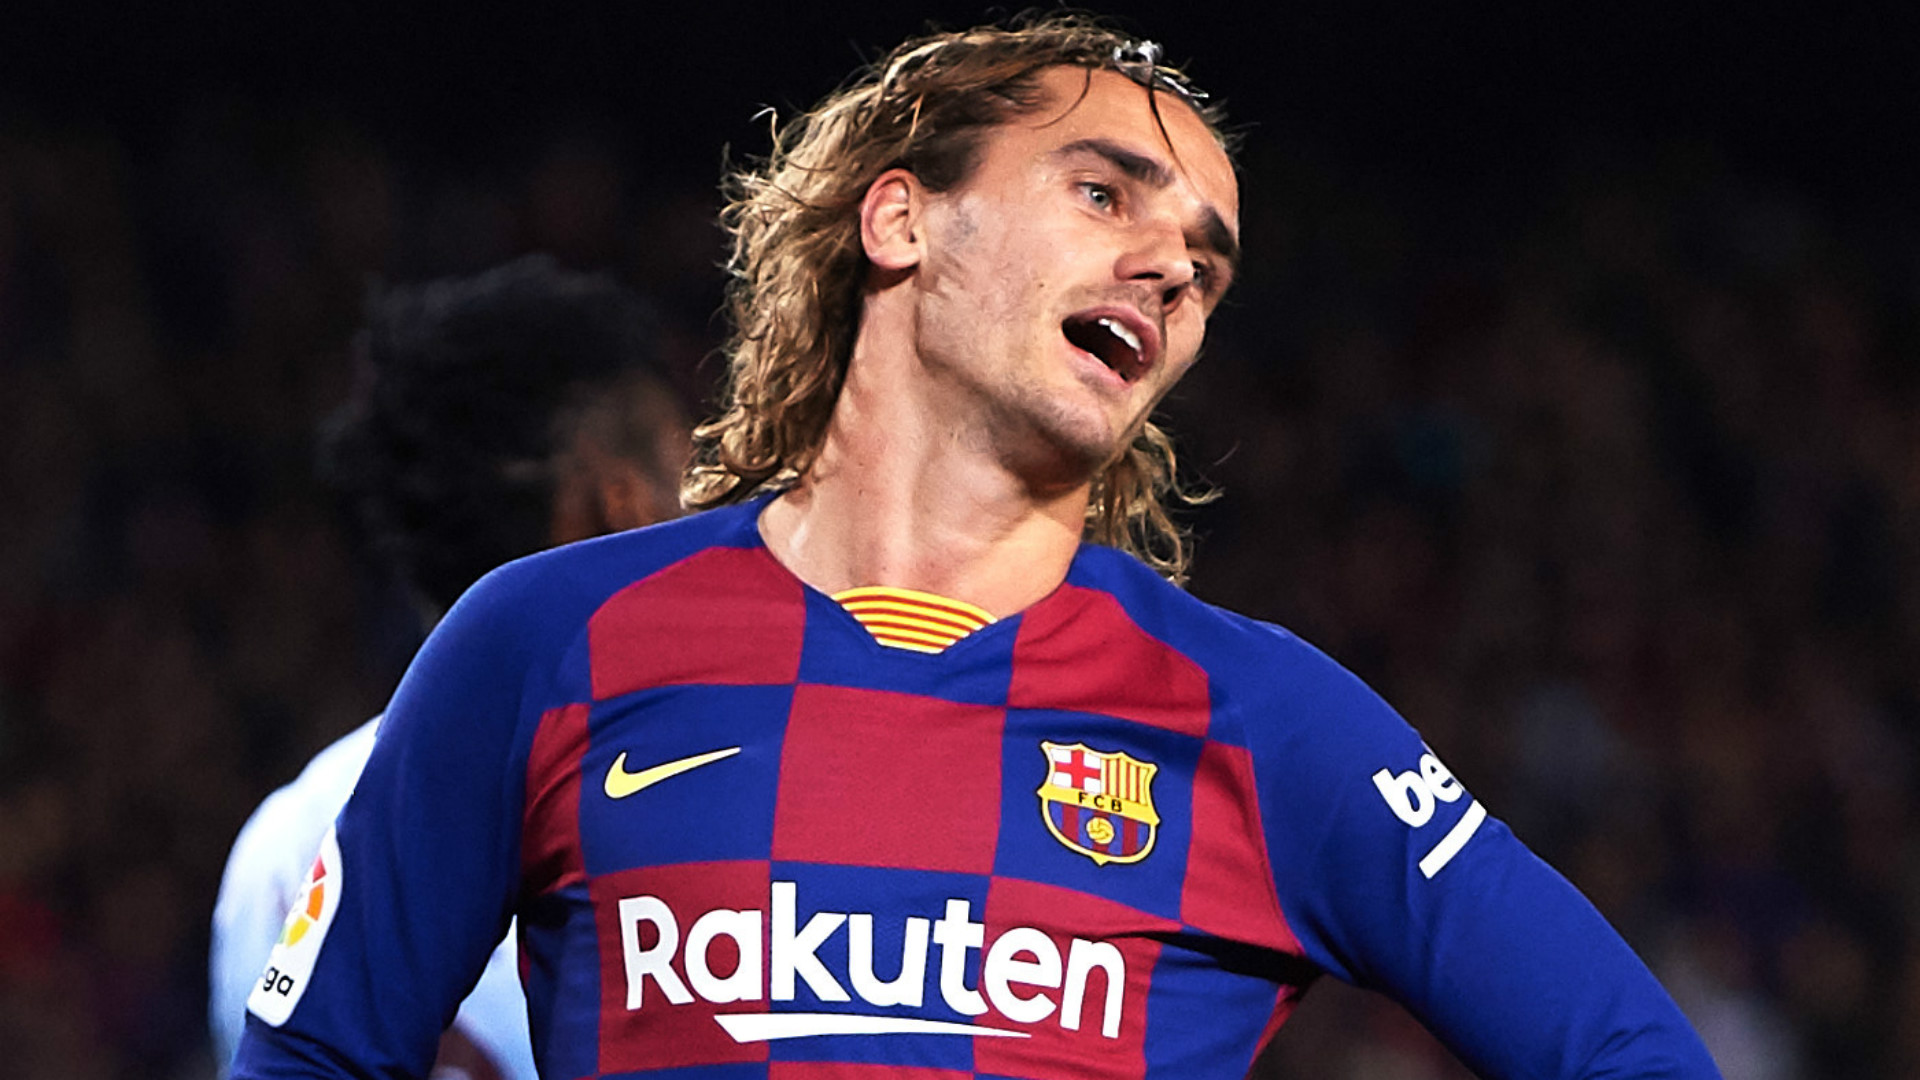 Griezmann: I knew it was going to be hard at Barcelona but I'm still learning